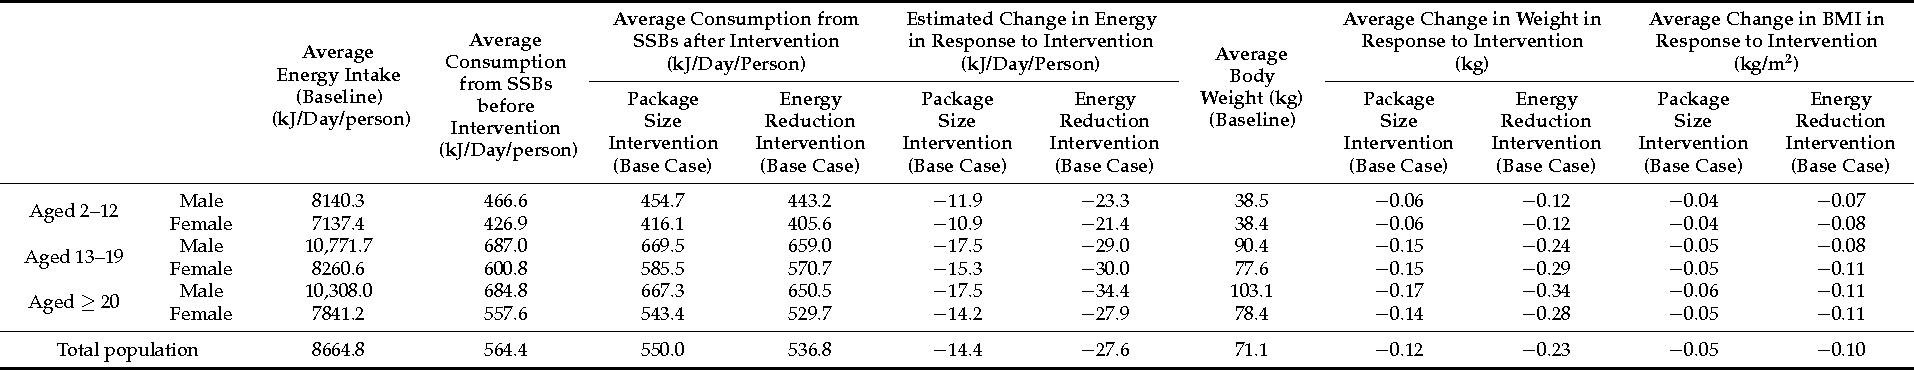 Table 4. Estimated effects of package size cap (base case) and energy reduction (base case) interventions on the 2010 Australian population over their lifetime.